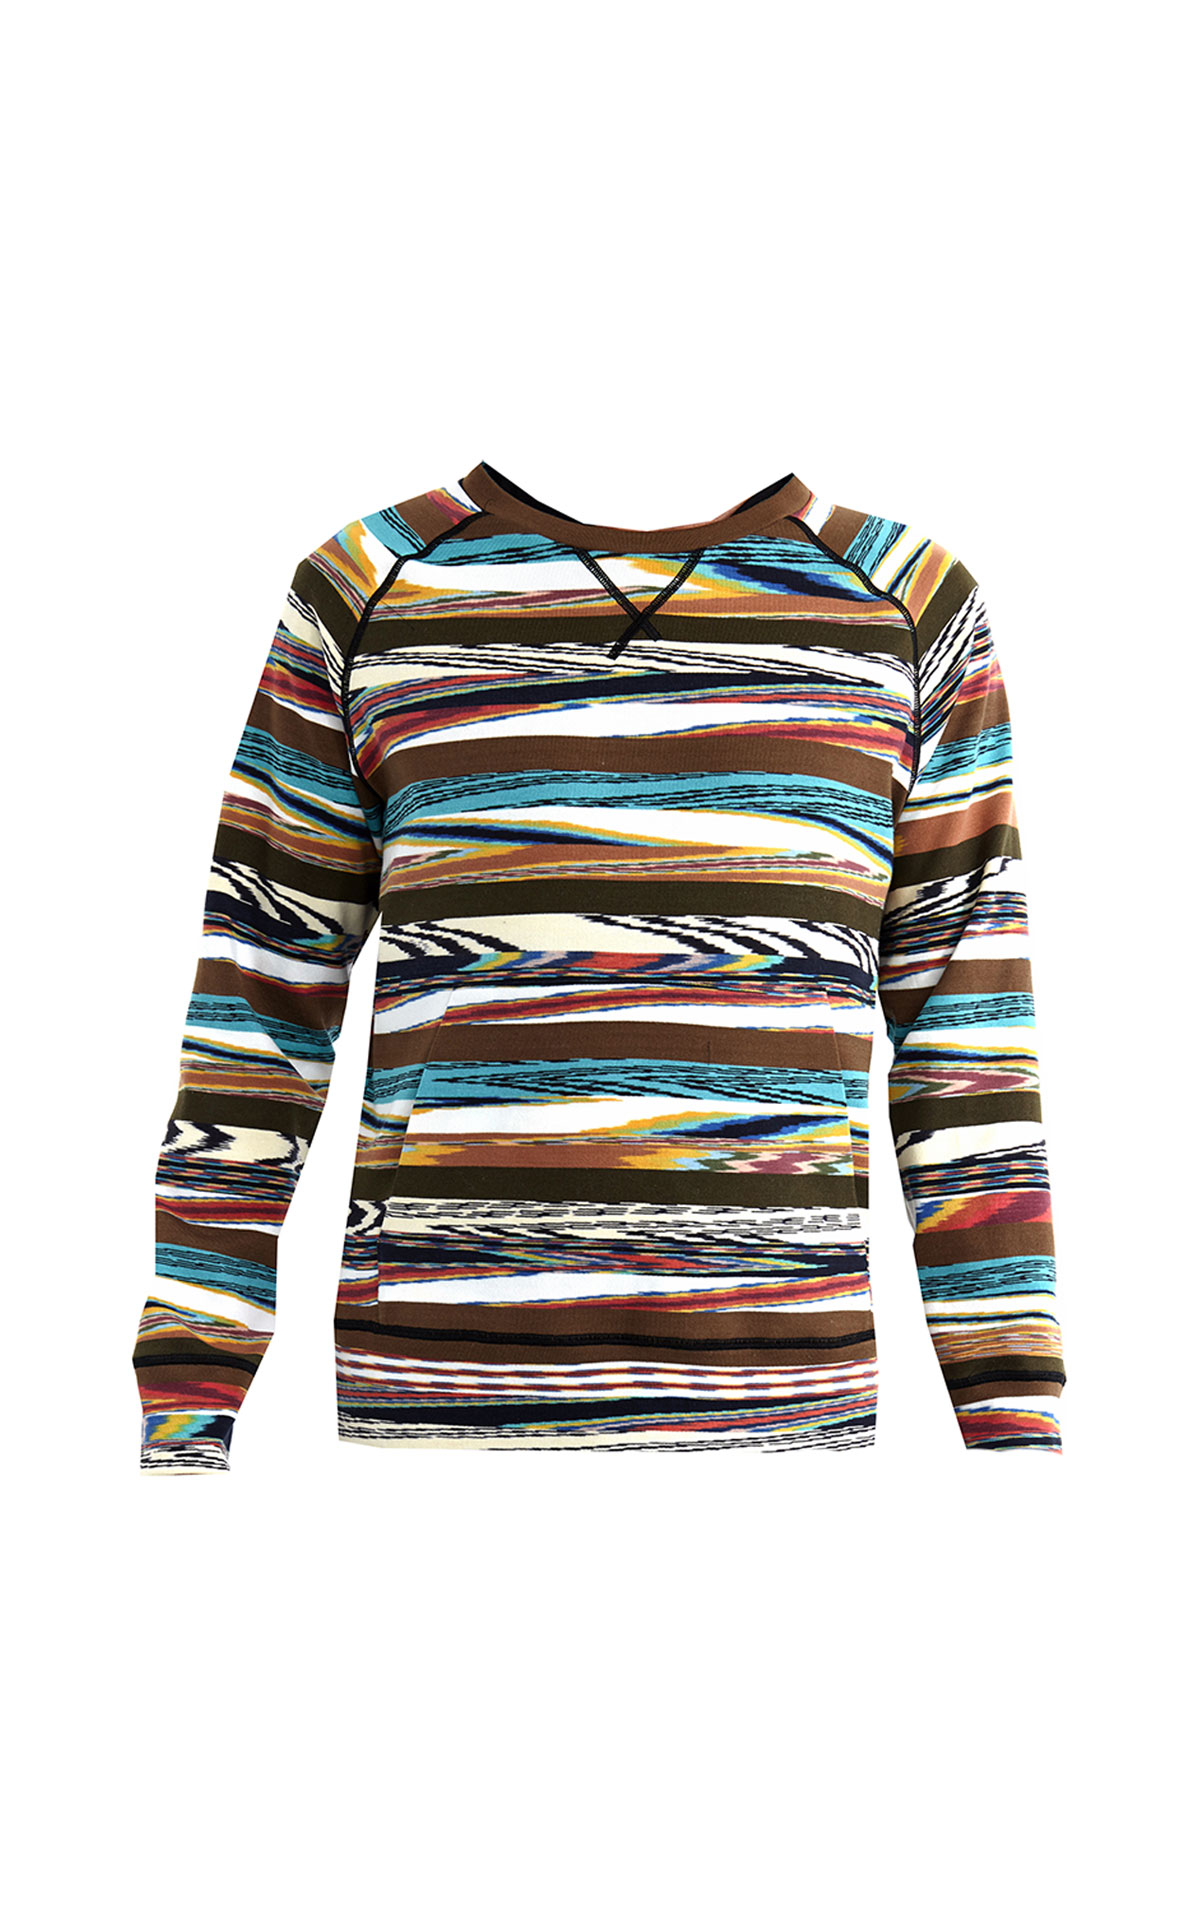 Missoni Men's long sleeve top from Bicester Village